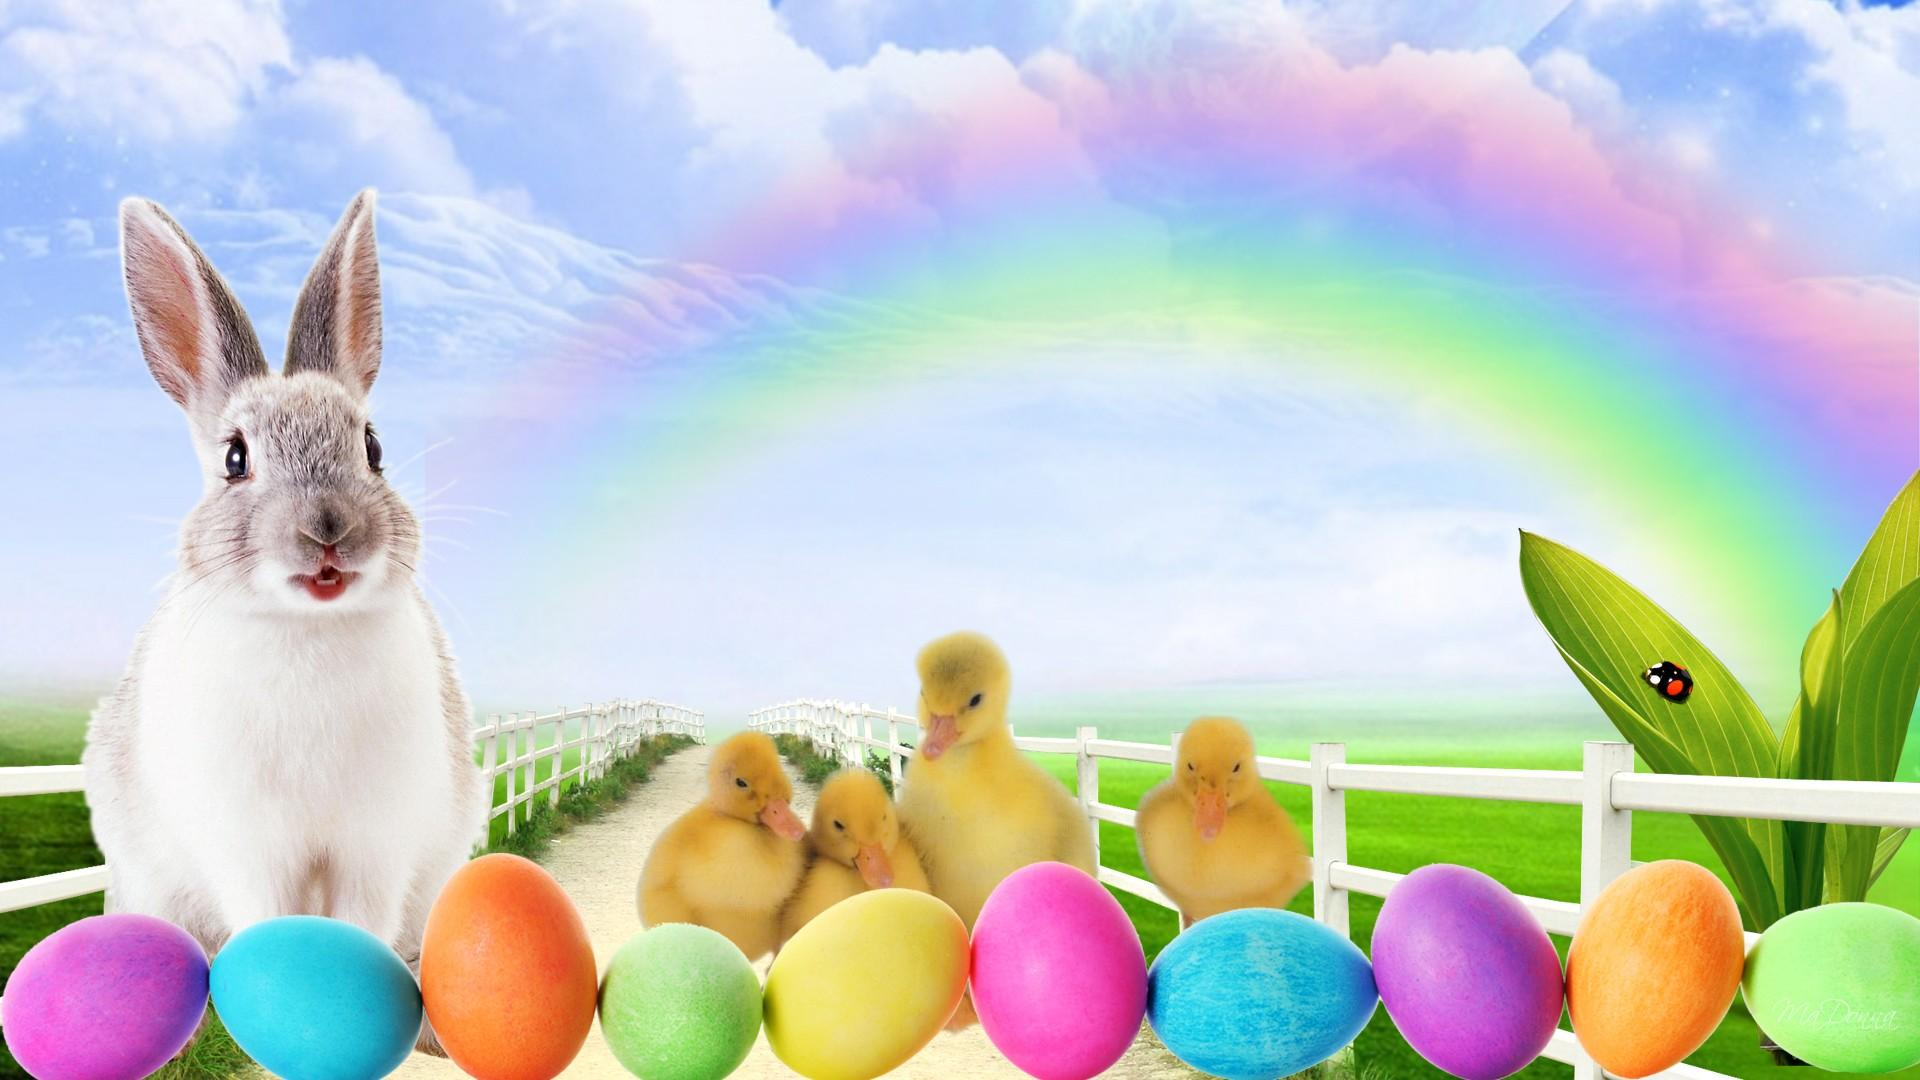 Easter Bunny Wallpaper Backgrounds